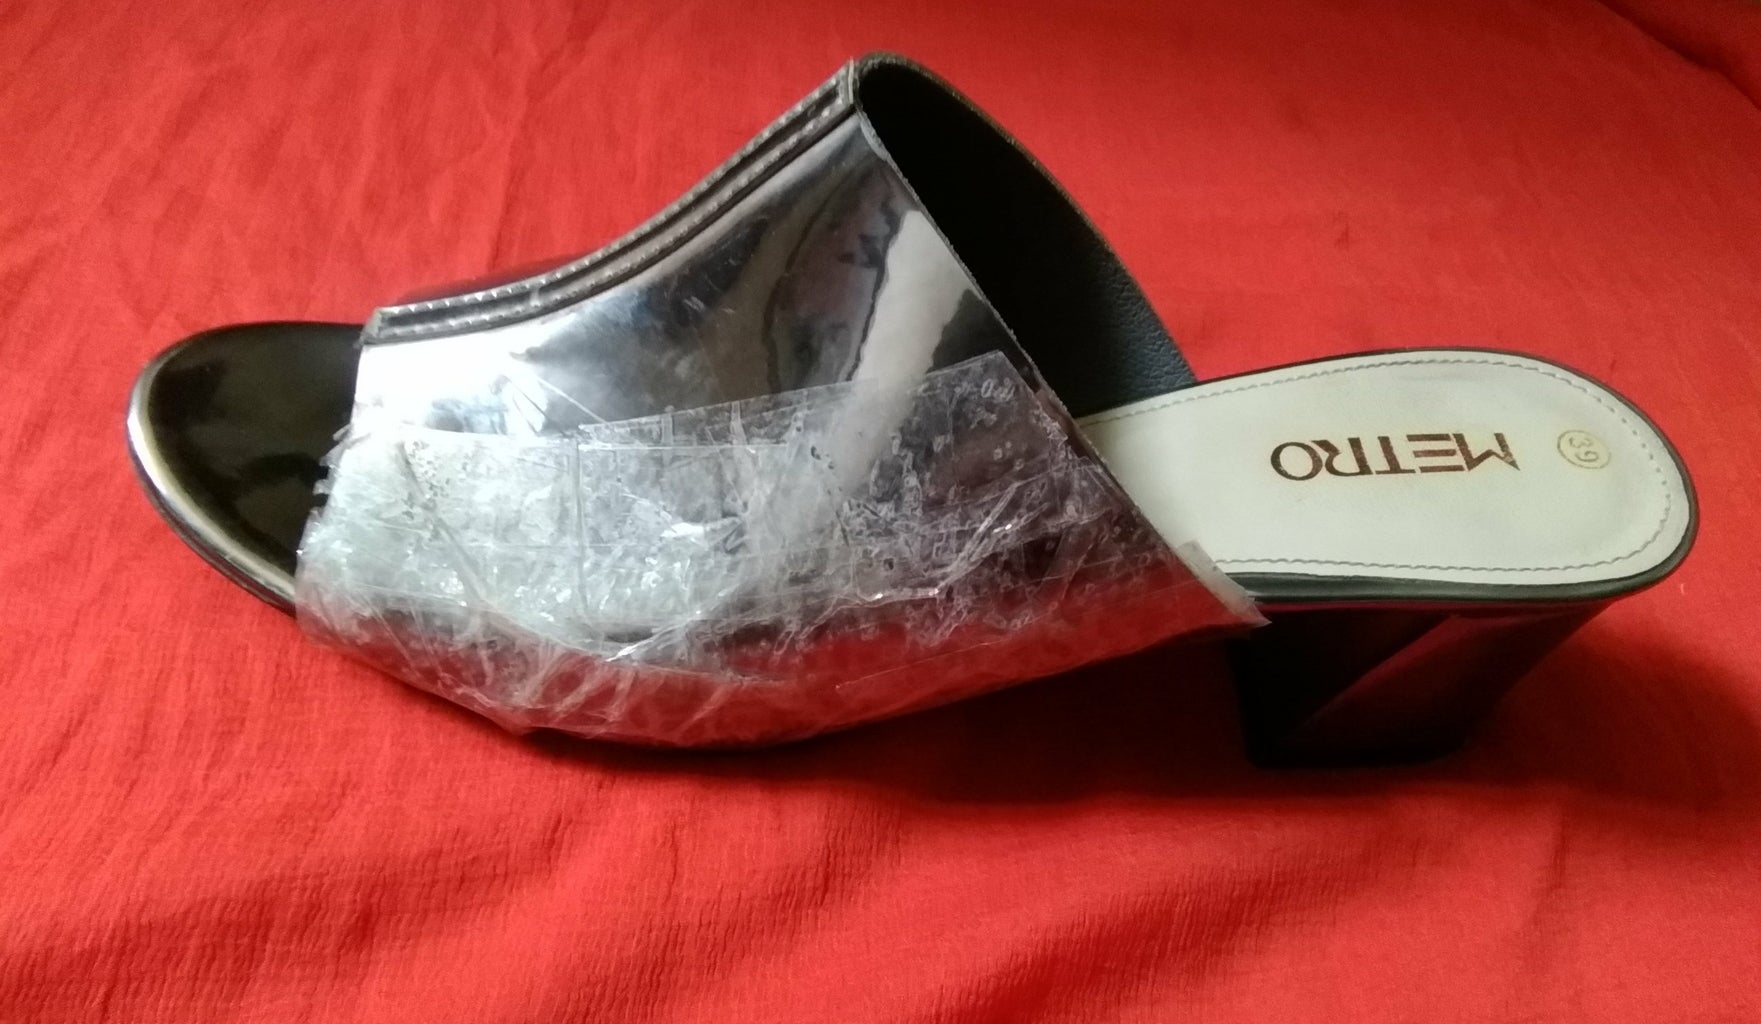 MAKING THE UPPER PART OF THE SHOE